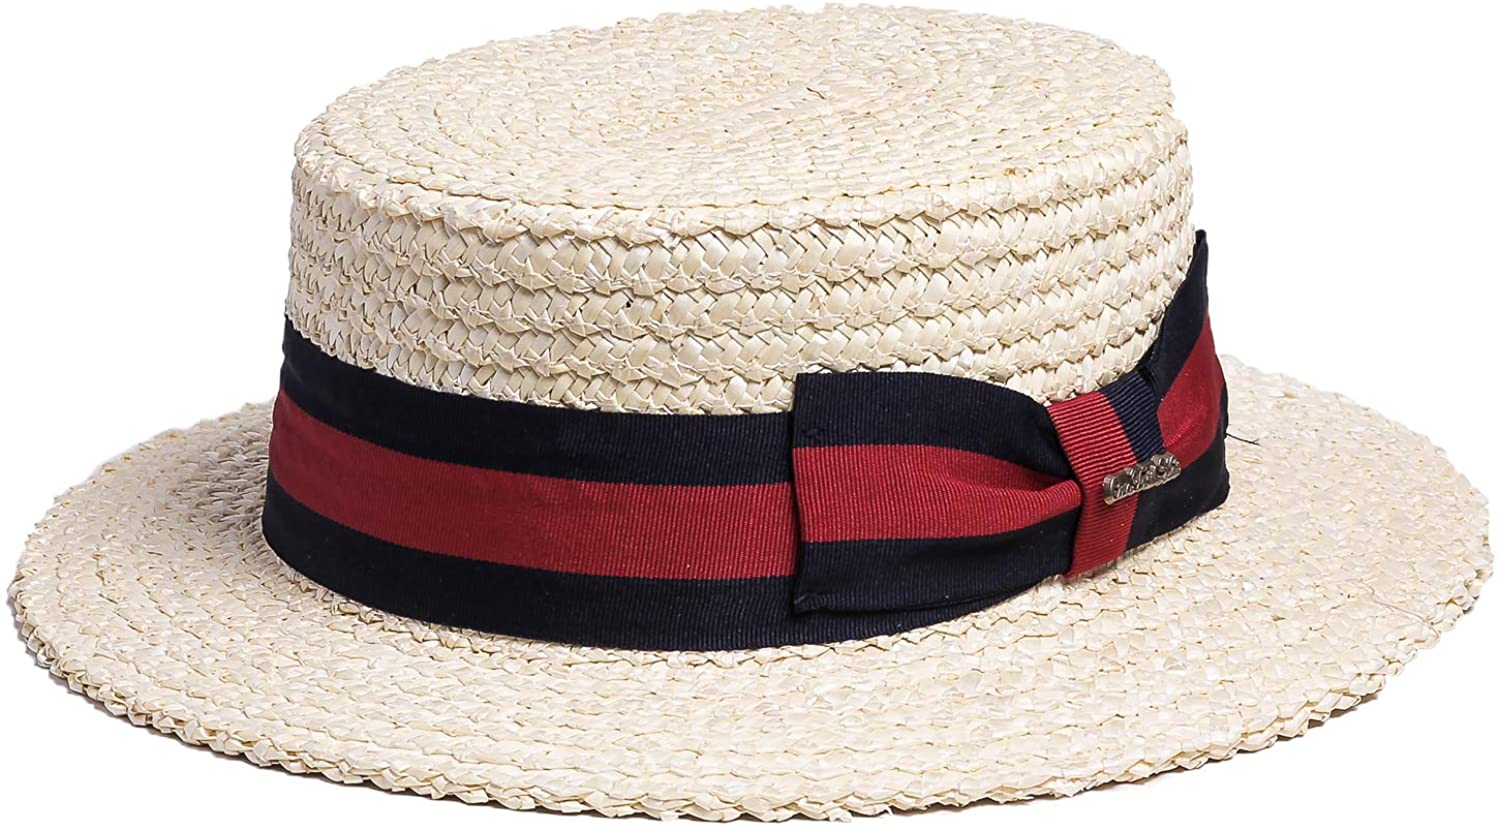 Downton Abbey Men's Fashion Guide Bellmora Mens Classic Straw Braid Boater Hat $49.99 AT vintagedancer.com